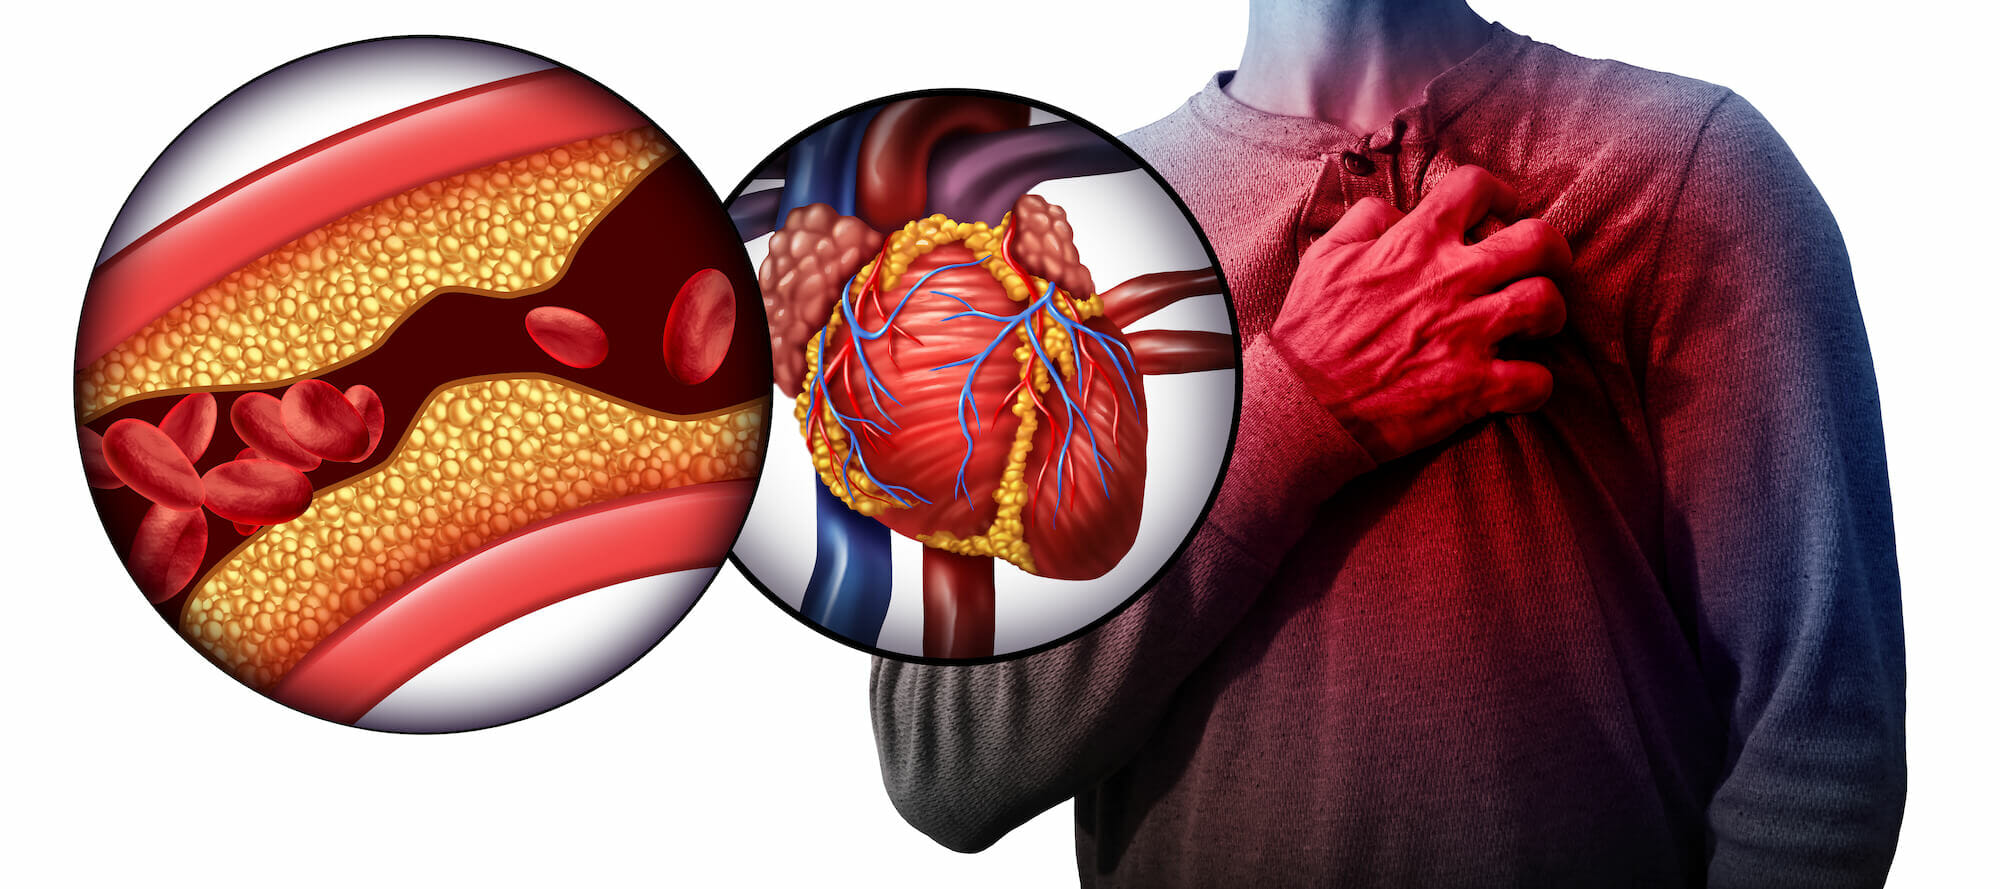 Myocardial,Infarction,As,A,Person,Suffering From A Heart Attack